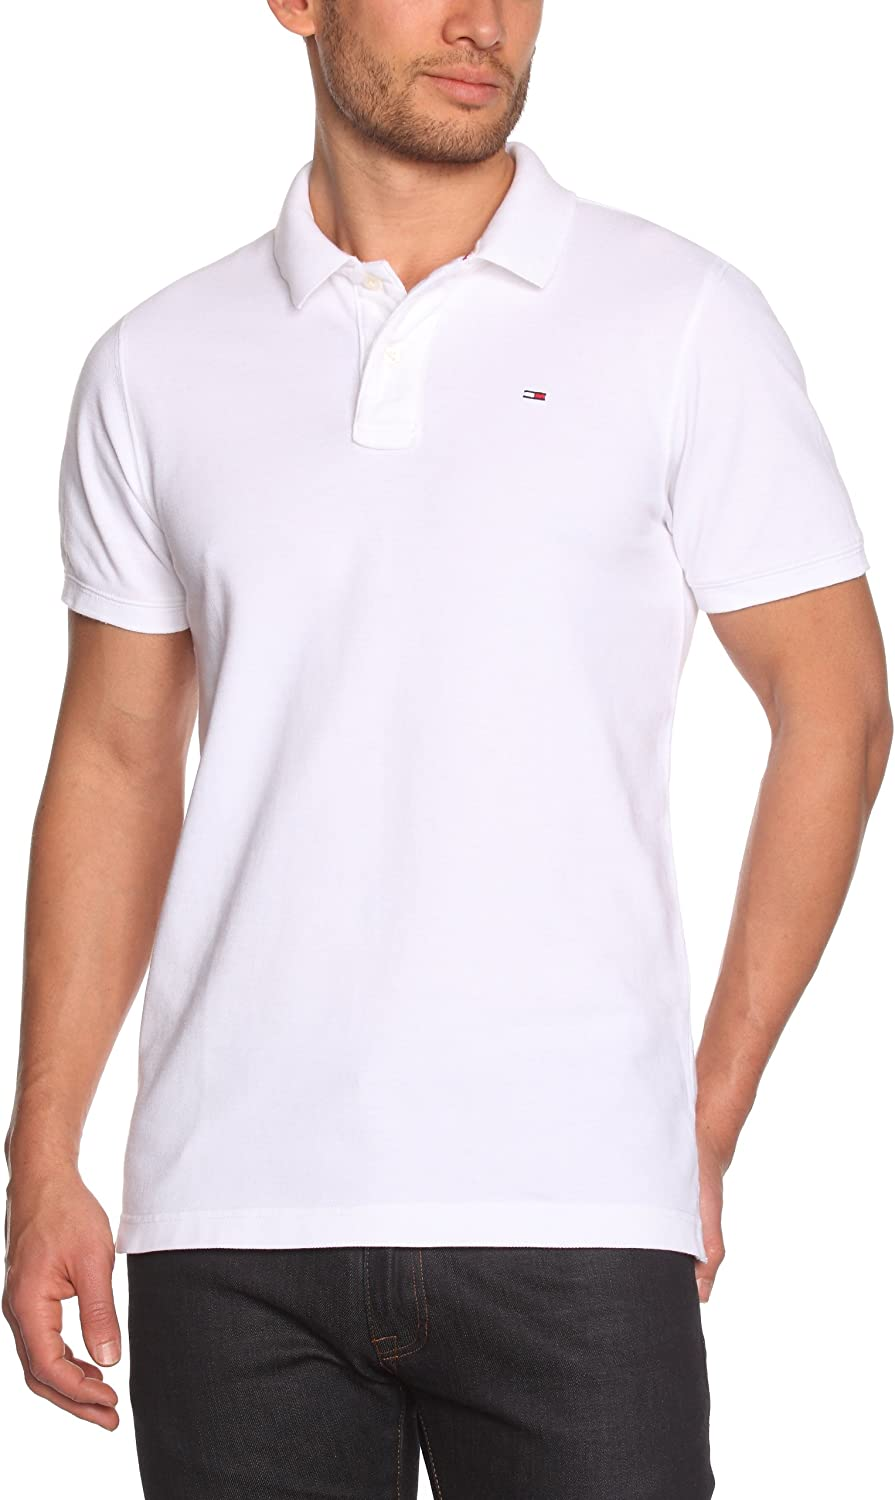 Tommy Hilfiger Pilot Polo Flag S/S Kir Hombre: Amazon.es: Ropa y ...